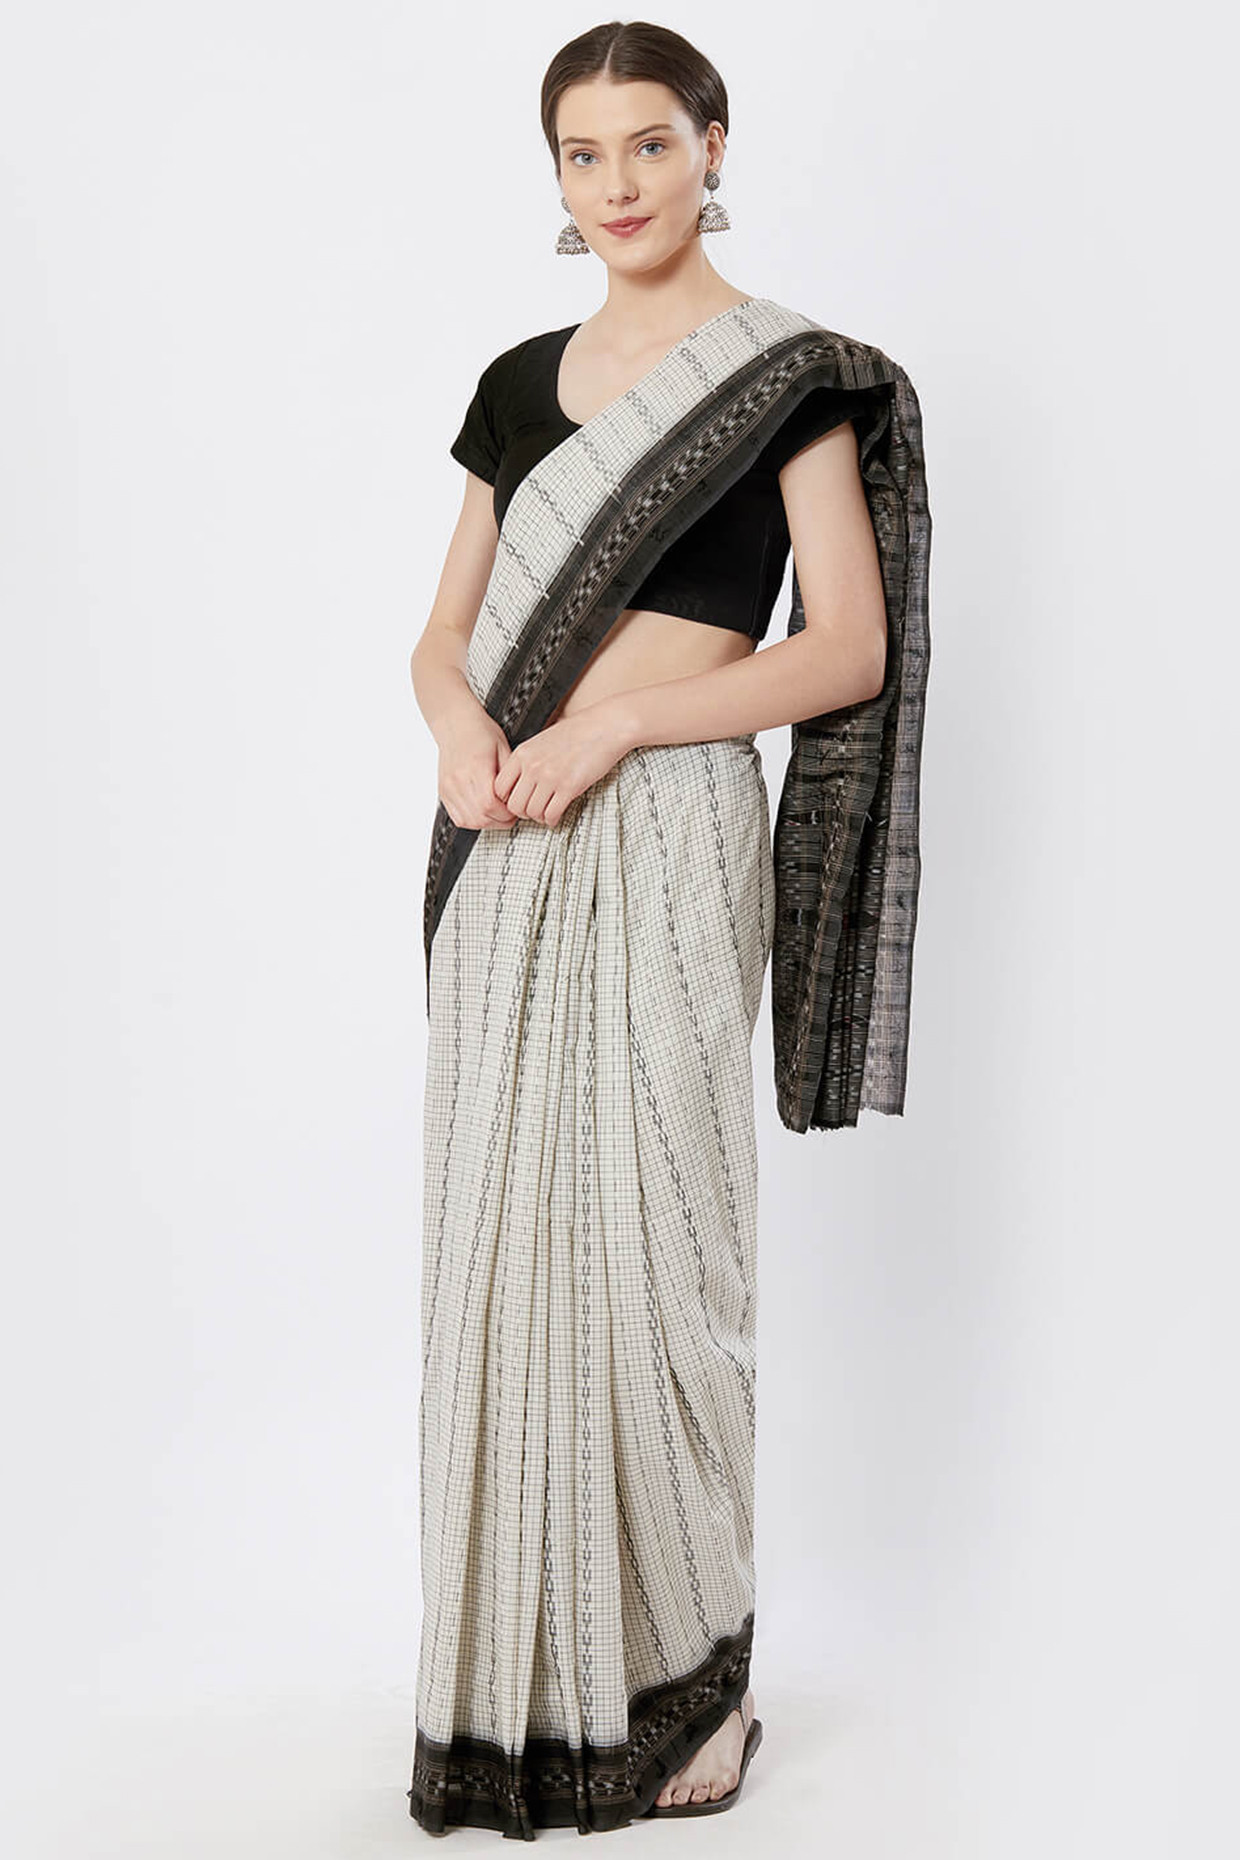 Off White And Black Sambalpuri Cotton Saree by Crafts Collection